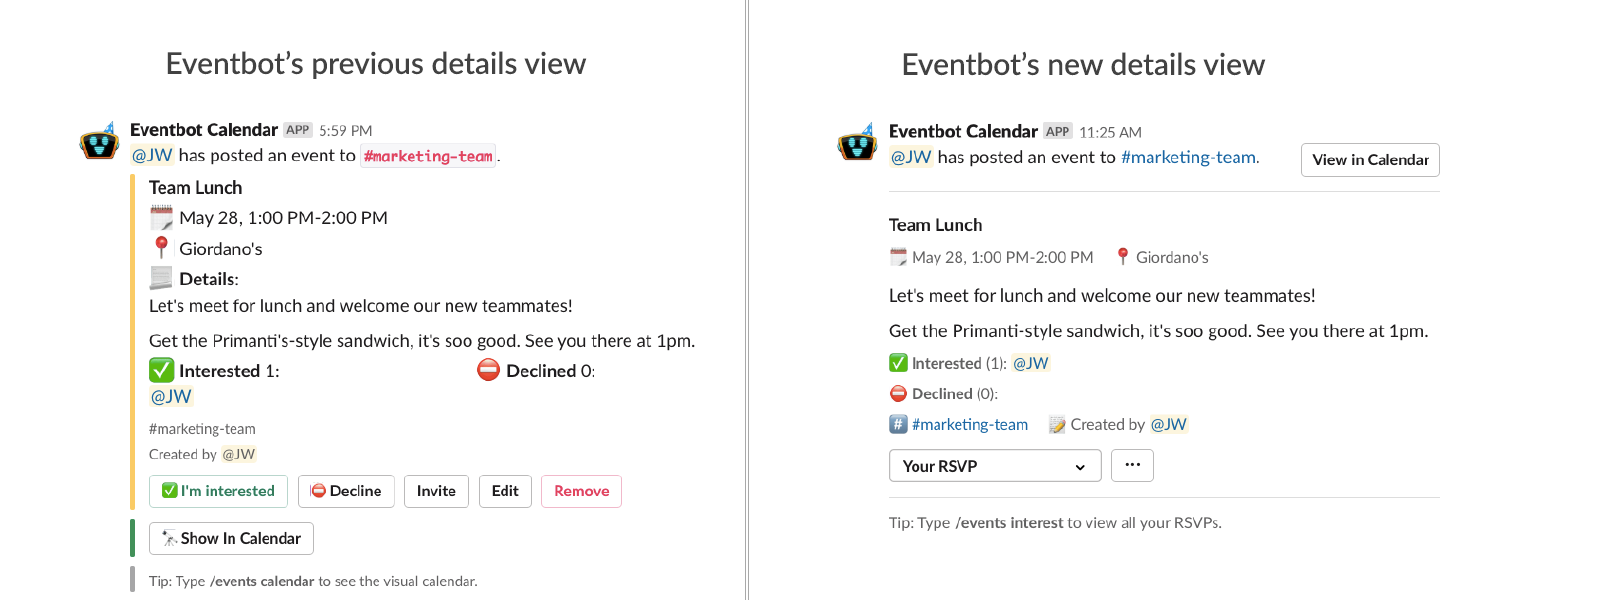 A fresh new look for events | Eventbot Blog